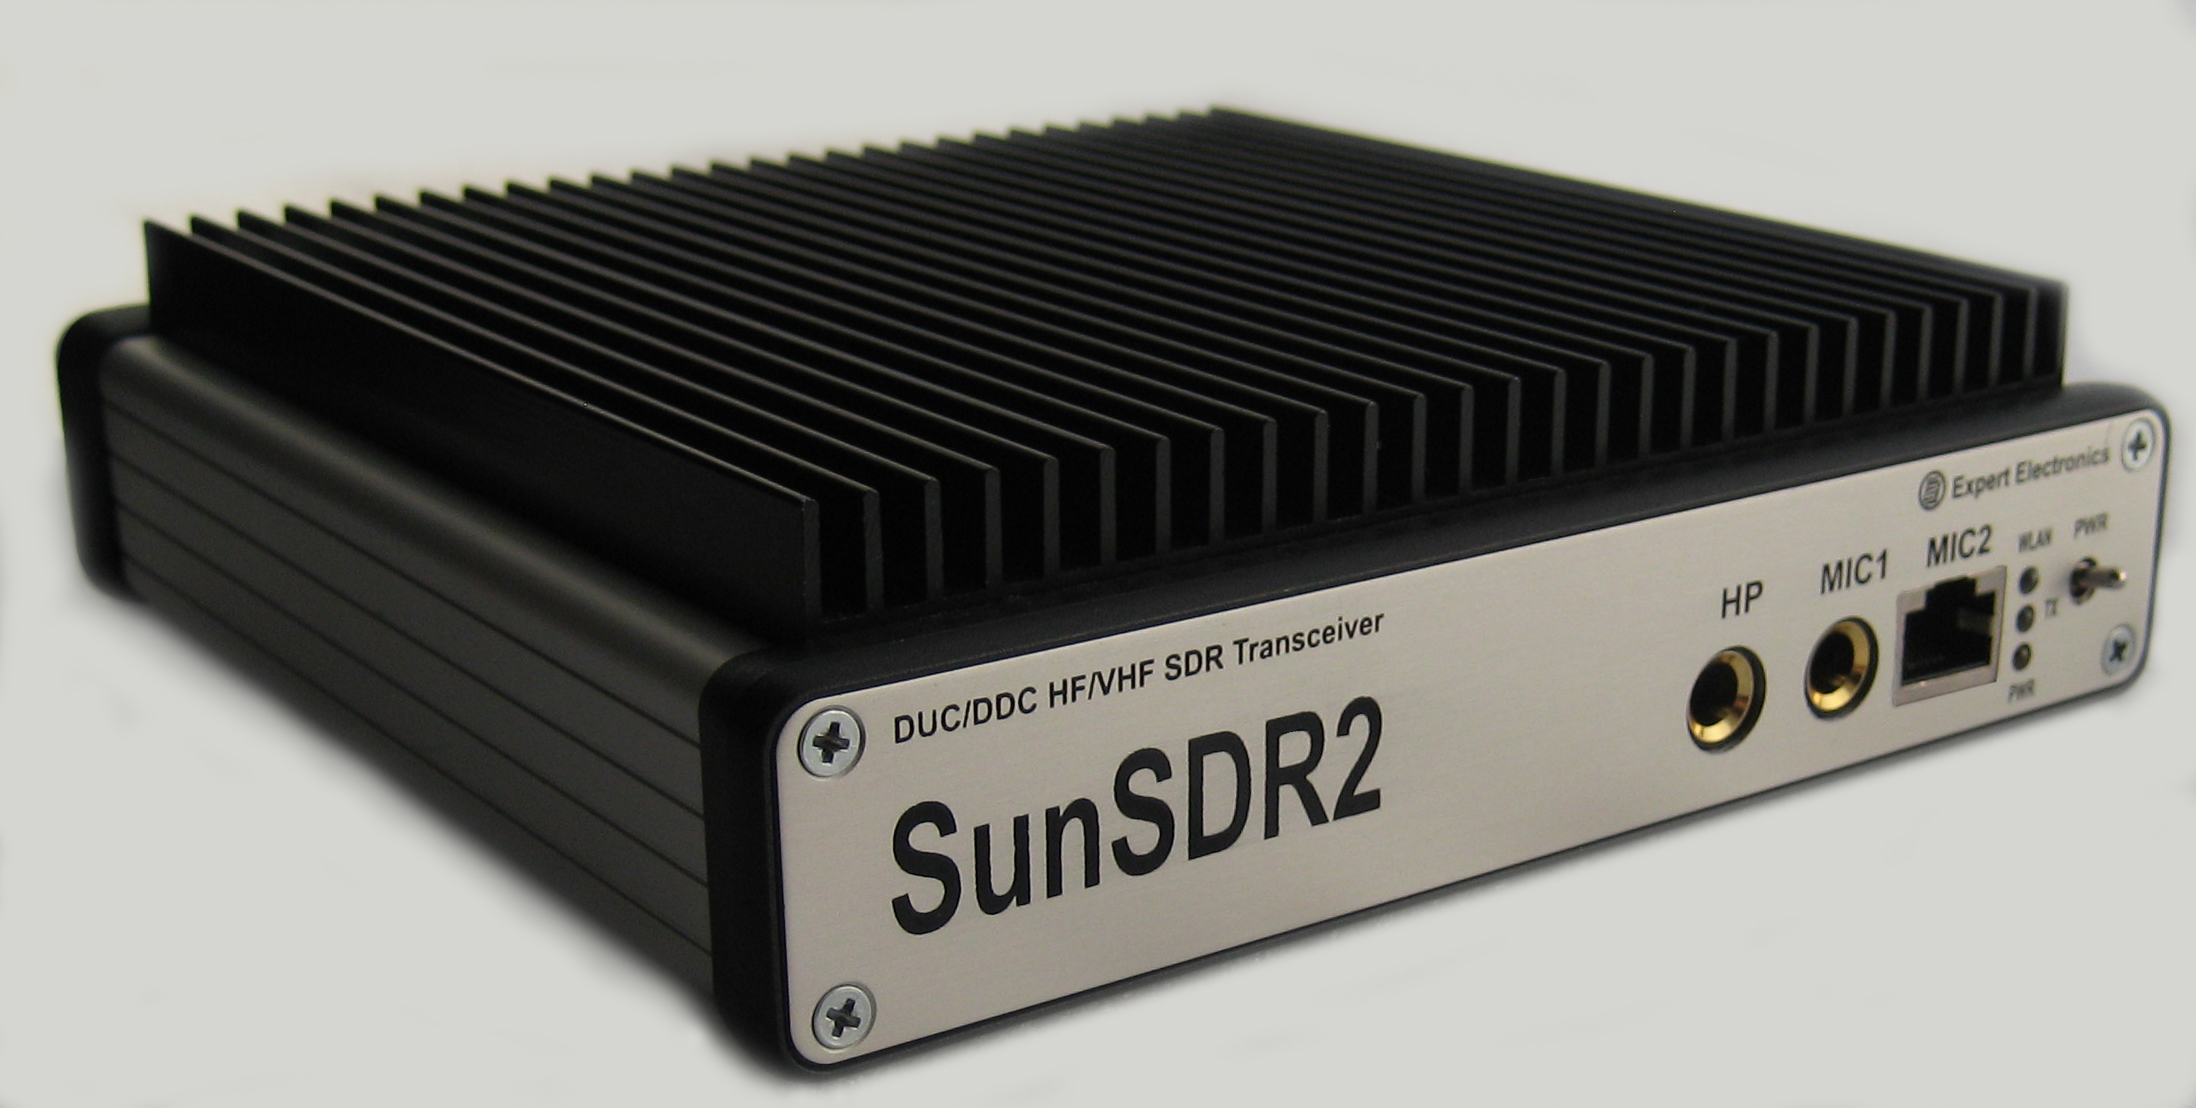 sunsdr2 on JumPic com